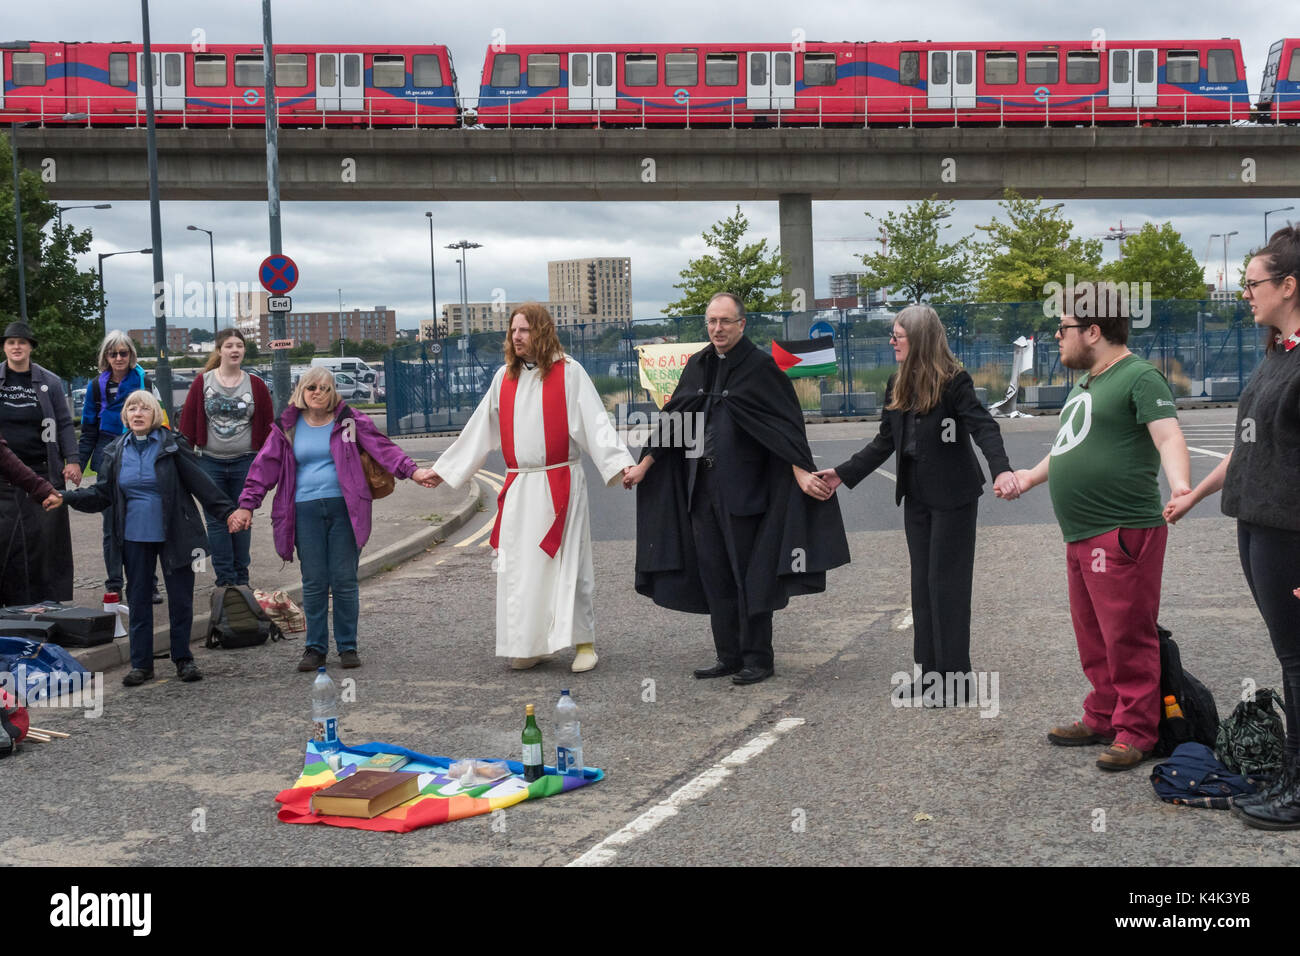 September 5, 2017 - London, UK - London, UK. 5th September 2017. People hold hands at the end of a mass on the road Stock Photo